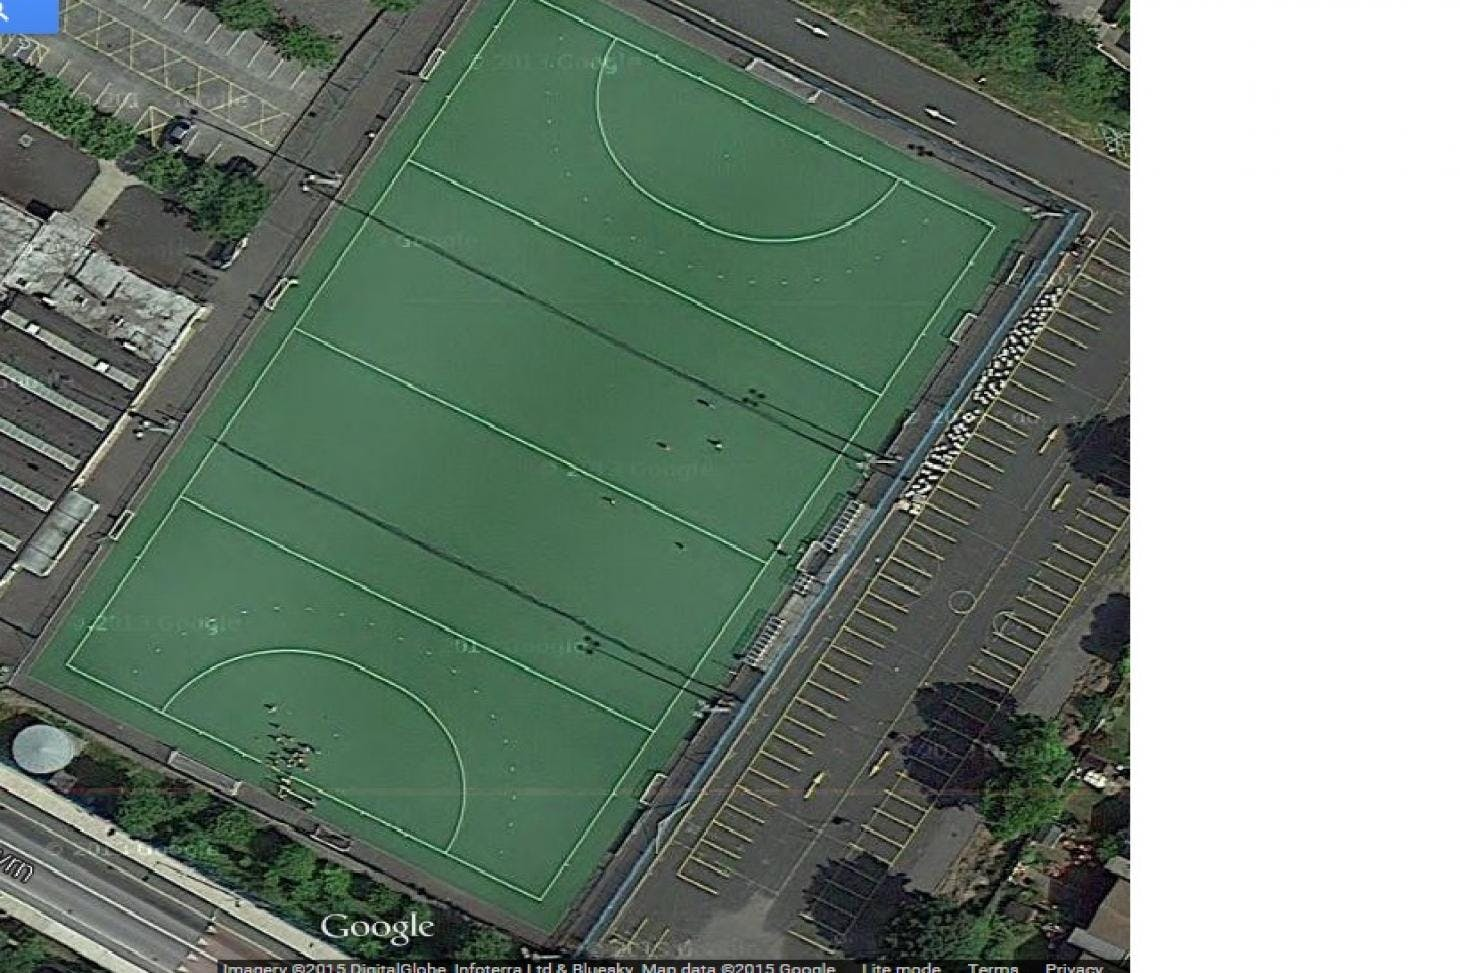 Newpark Sports Centre 11 a side | Astroturf football pitch